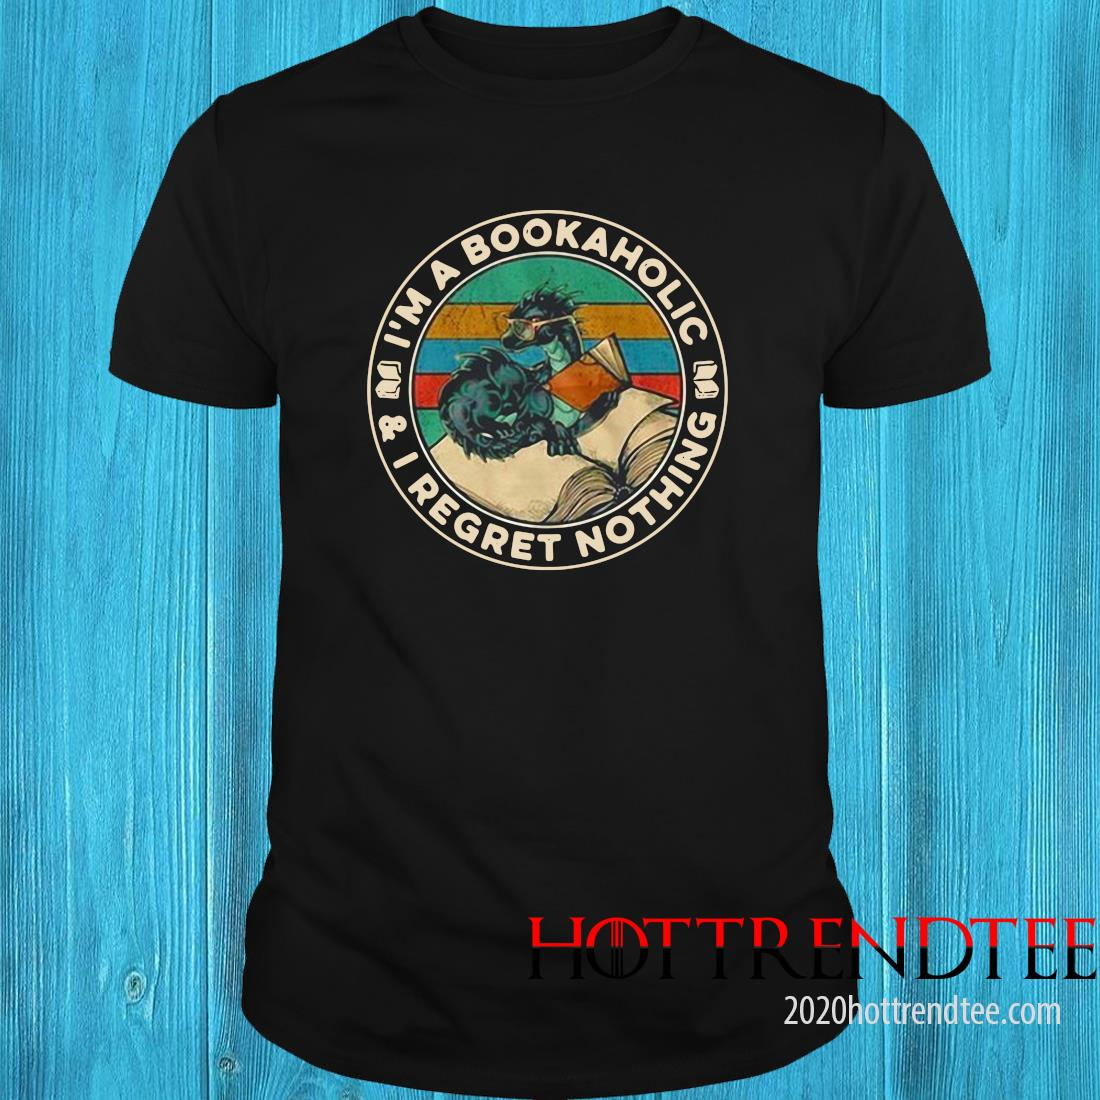 I'm A Bookaholic And I Regret Nothing Shirt